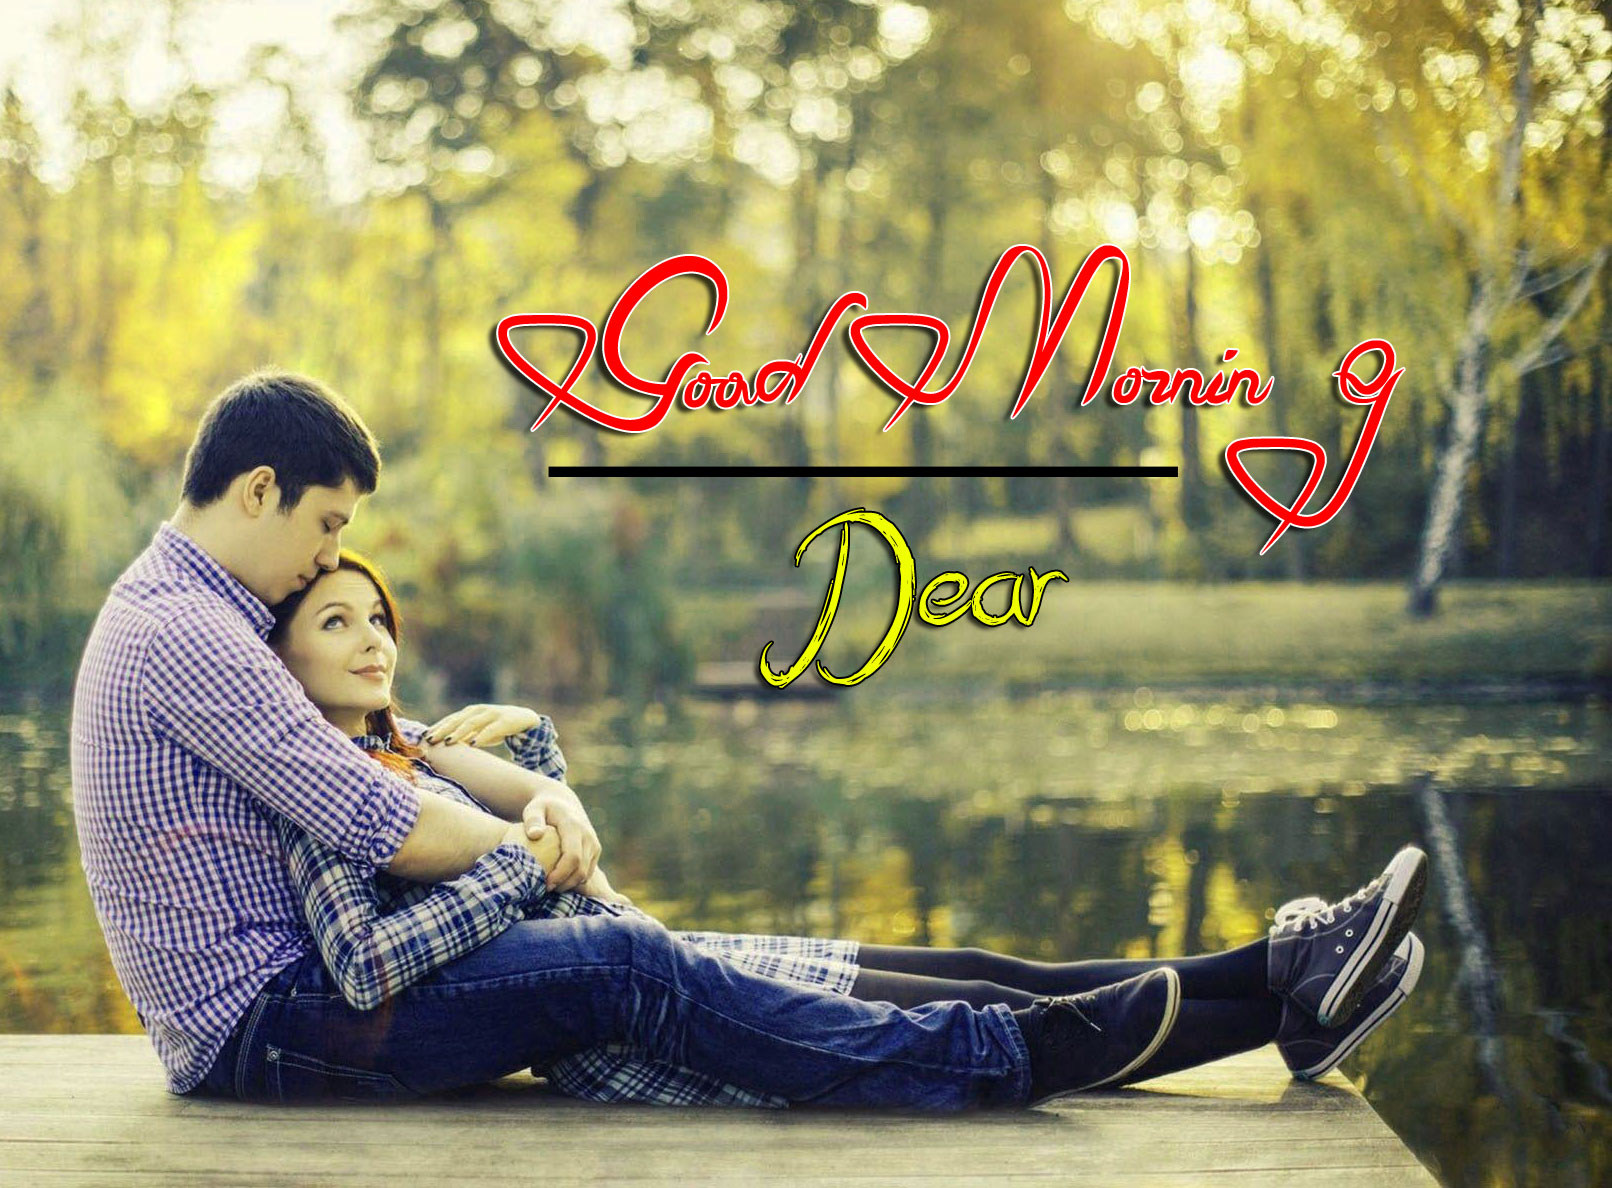 beautiful couple good morning images photo for hd